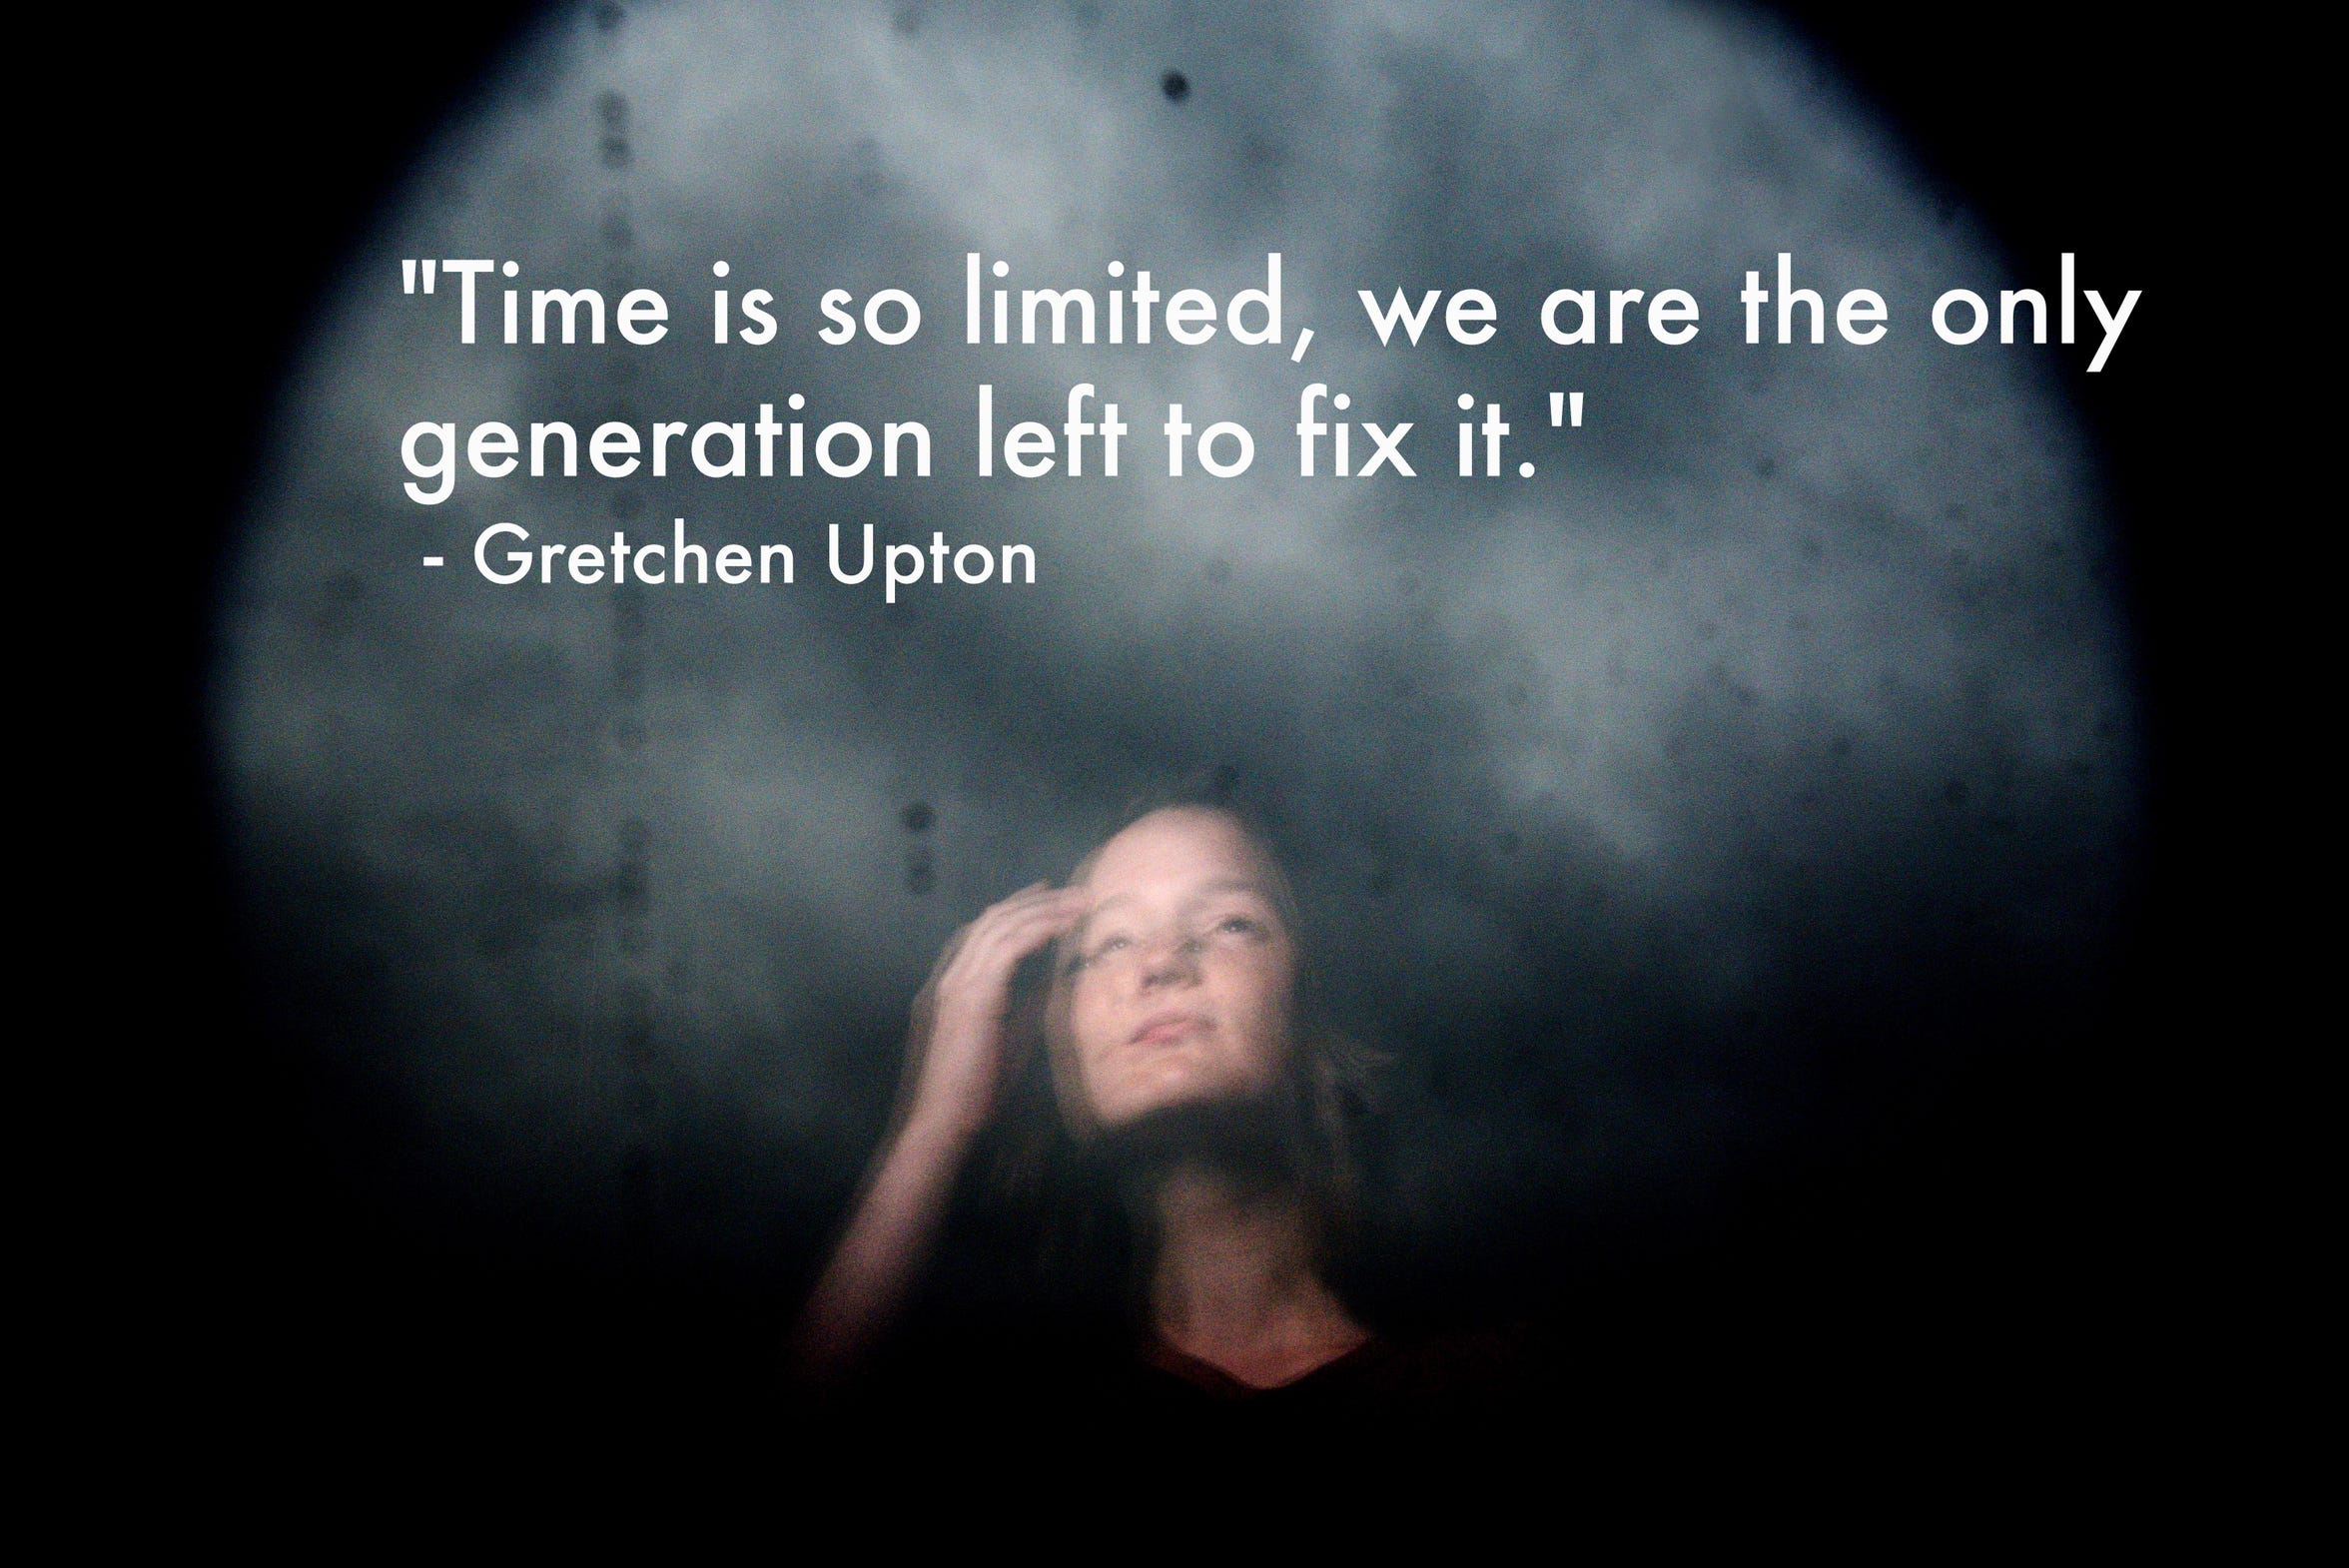 """Time is so limited, we are the only generation left to fix it."" -Gretchen Upton"